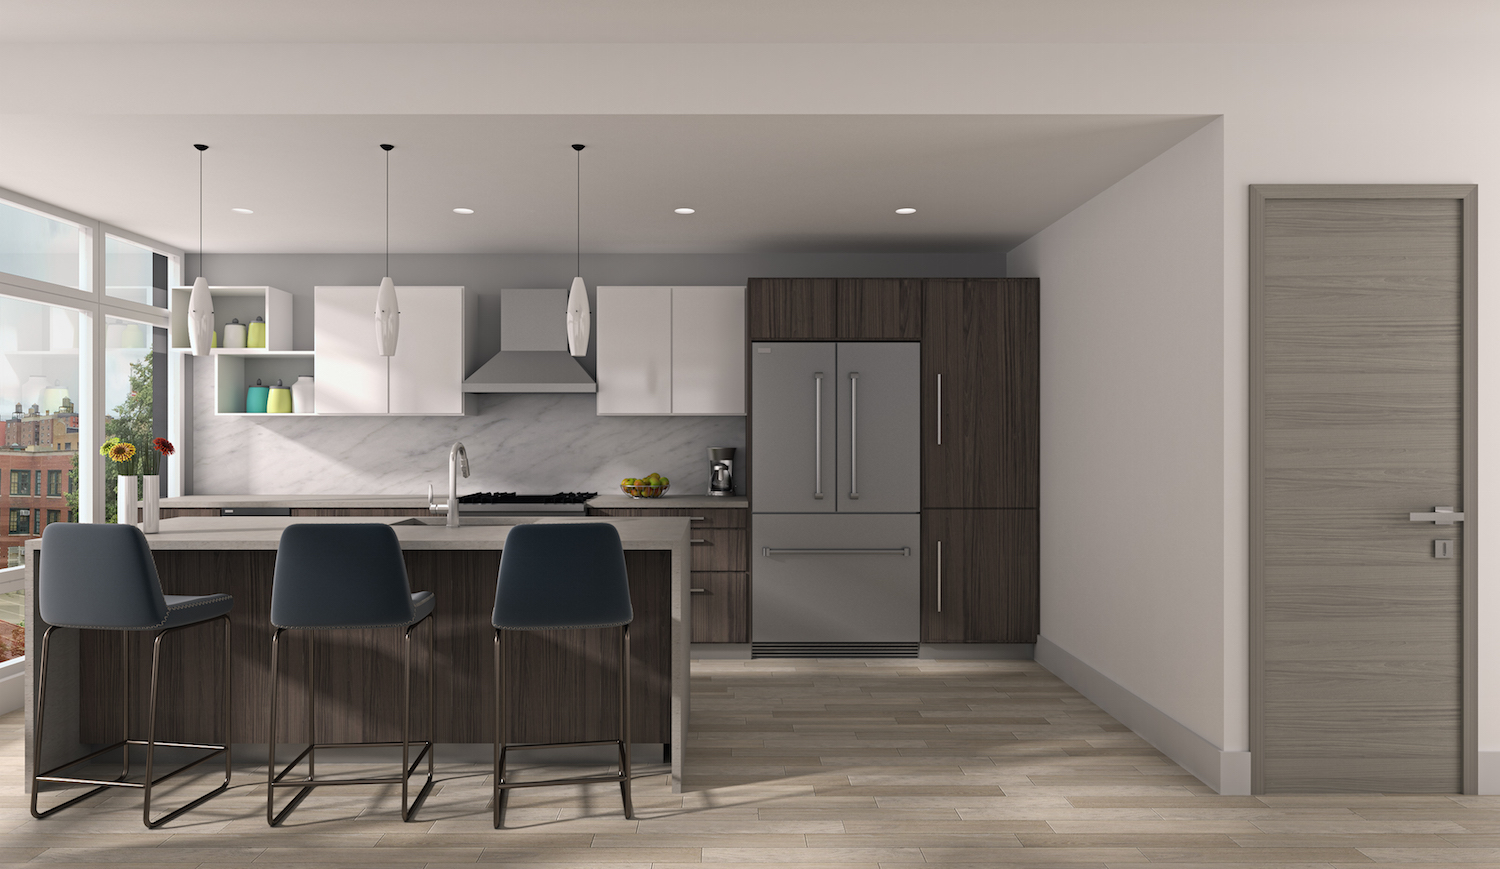 A kitchen at 952 Columbus Avenue. rendering via Douglas Elliman